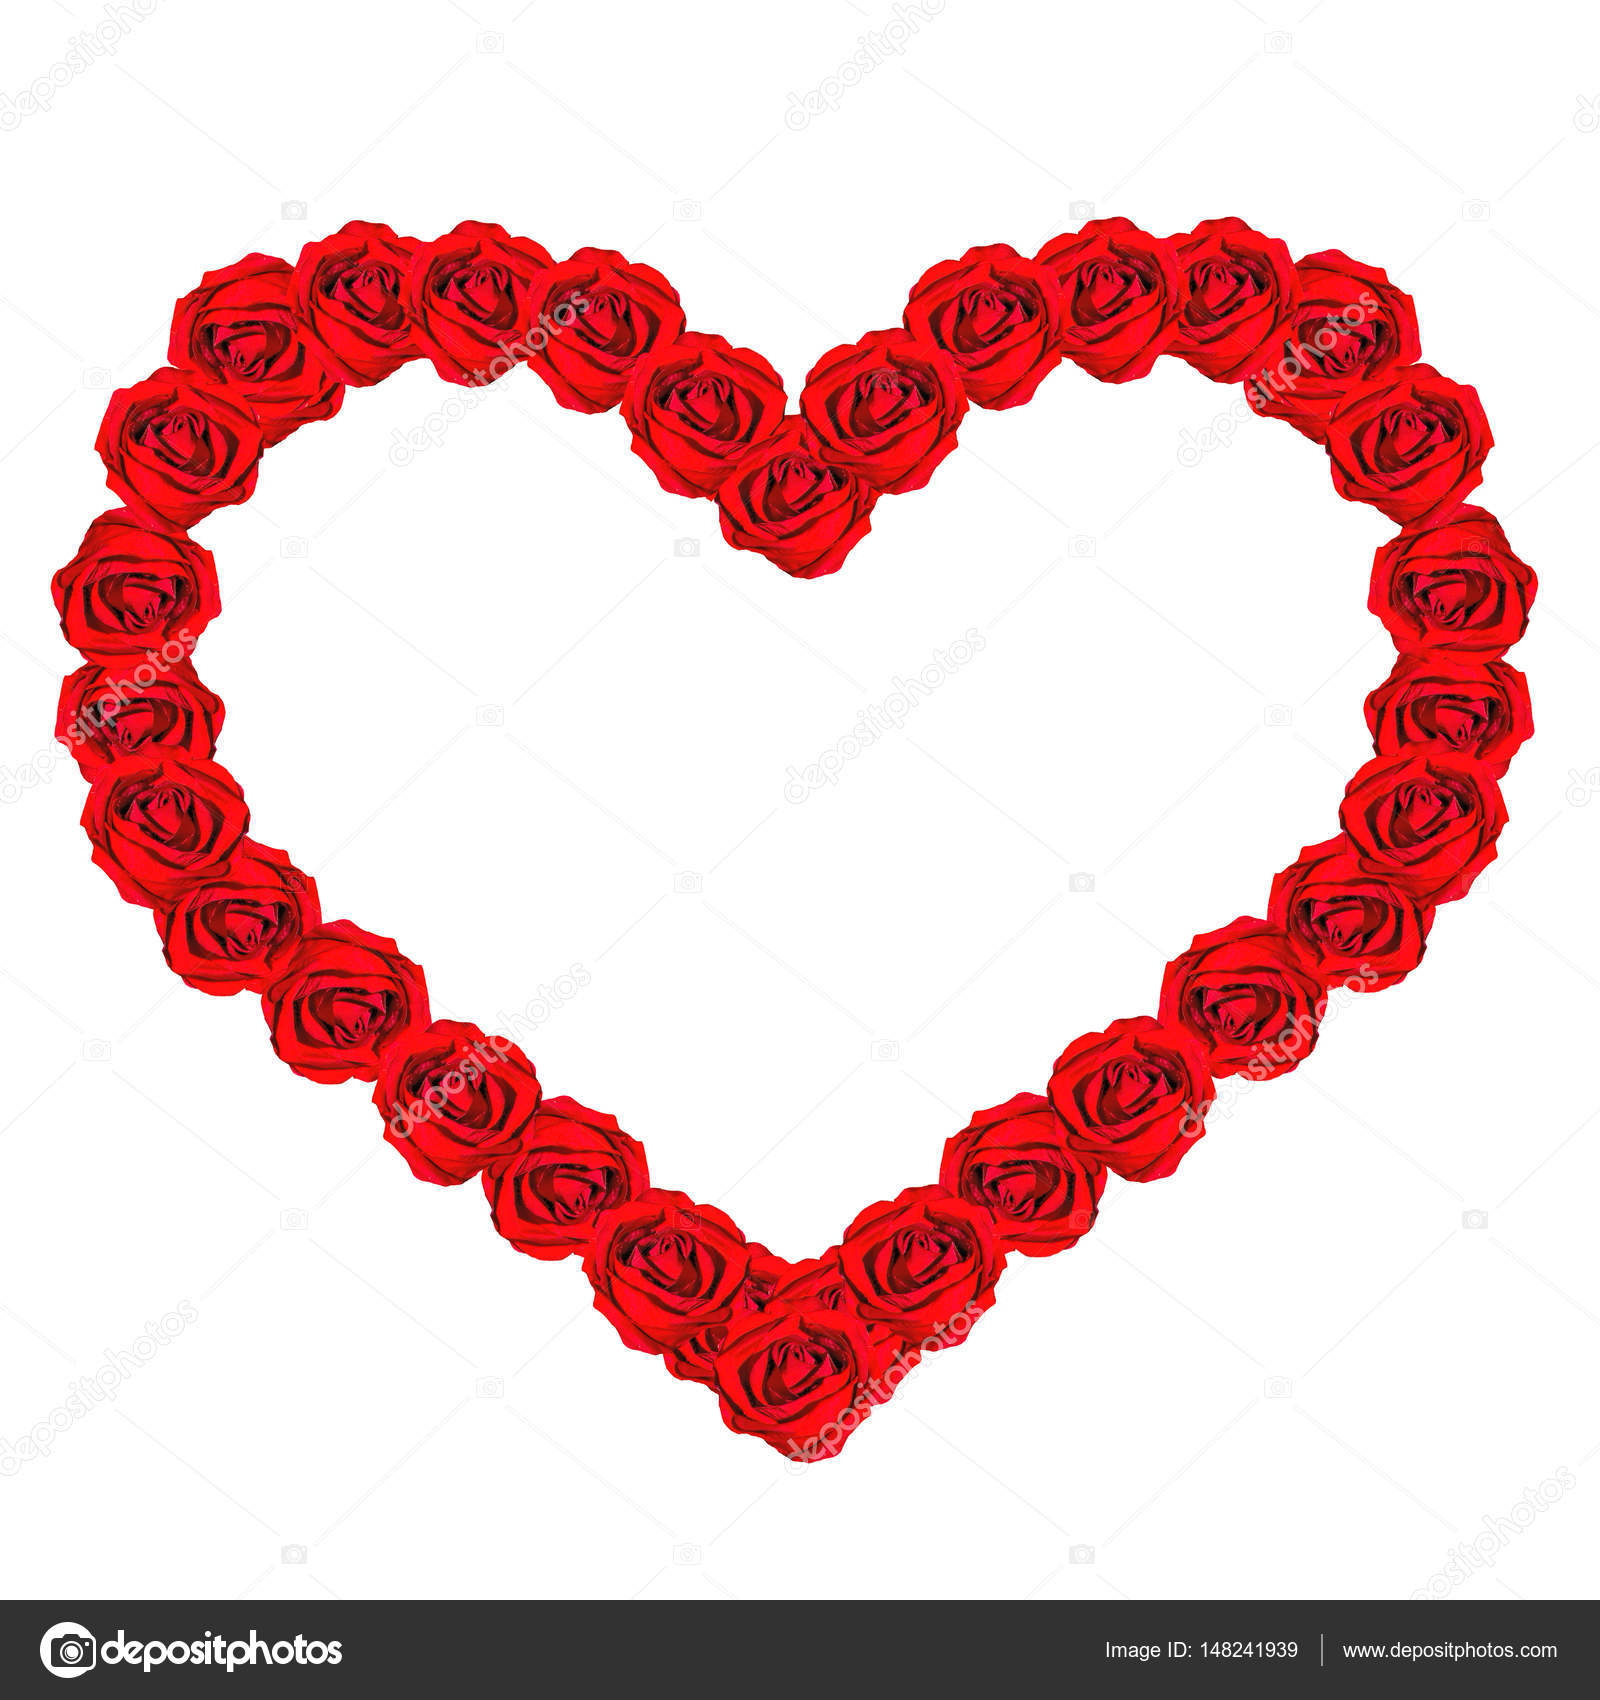 Heart Frame With Red Roses Stock Photo C Trudywilkerson 148241939 Search, discover and share your favorite heart frame gifs. https depositphotos com 148241939 stock photo heart frame with red roses html